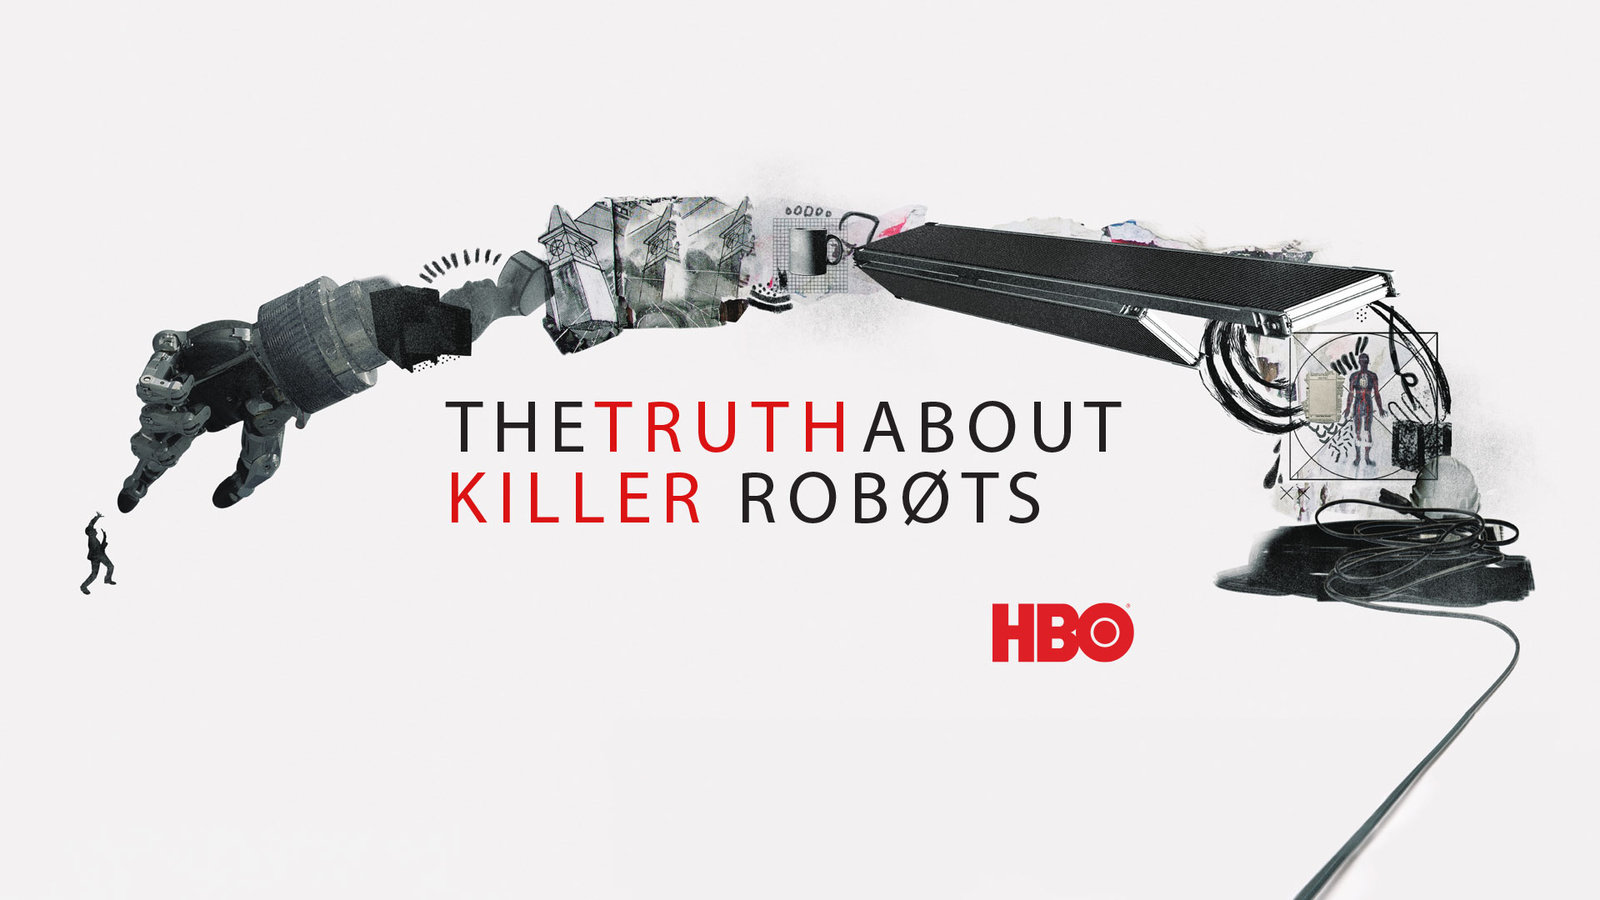 The Truth About Killer Robots